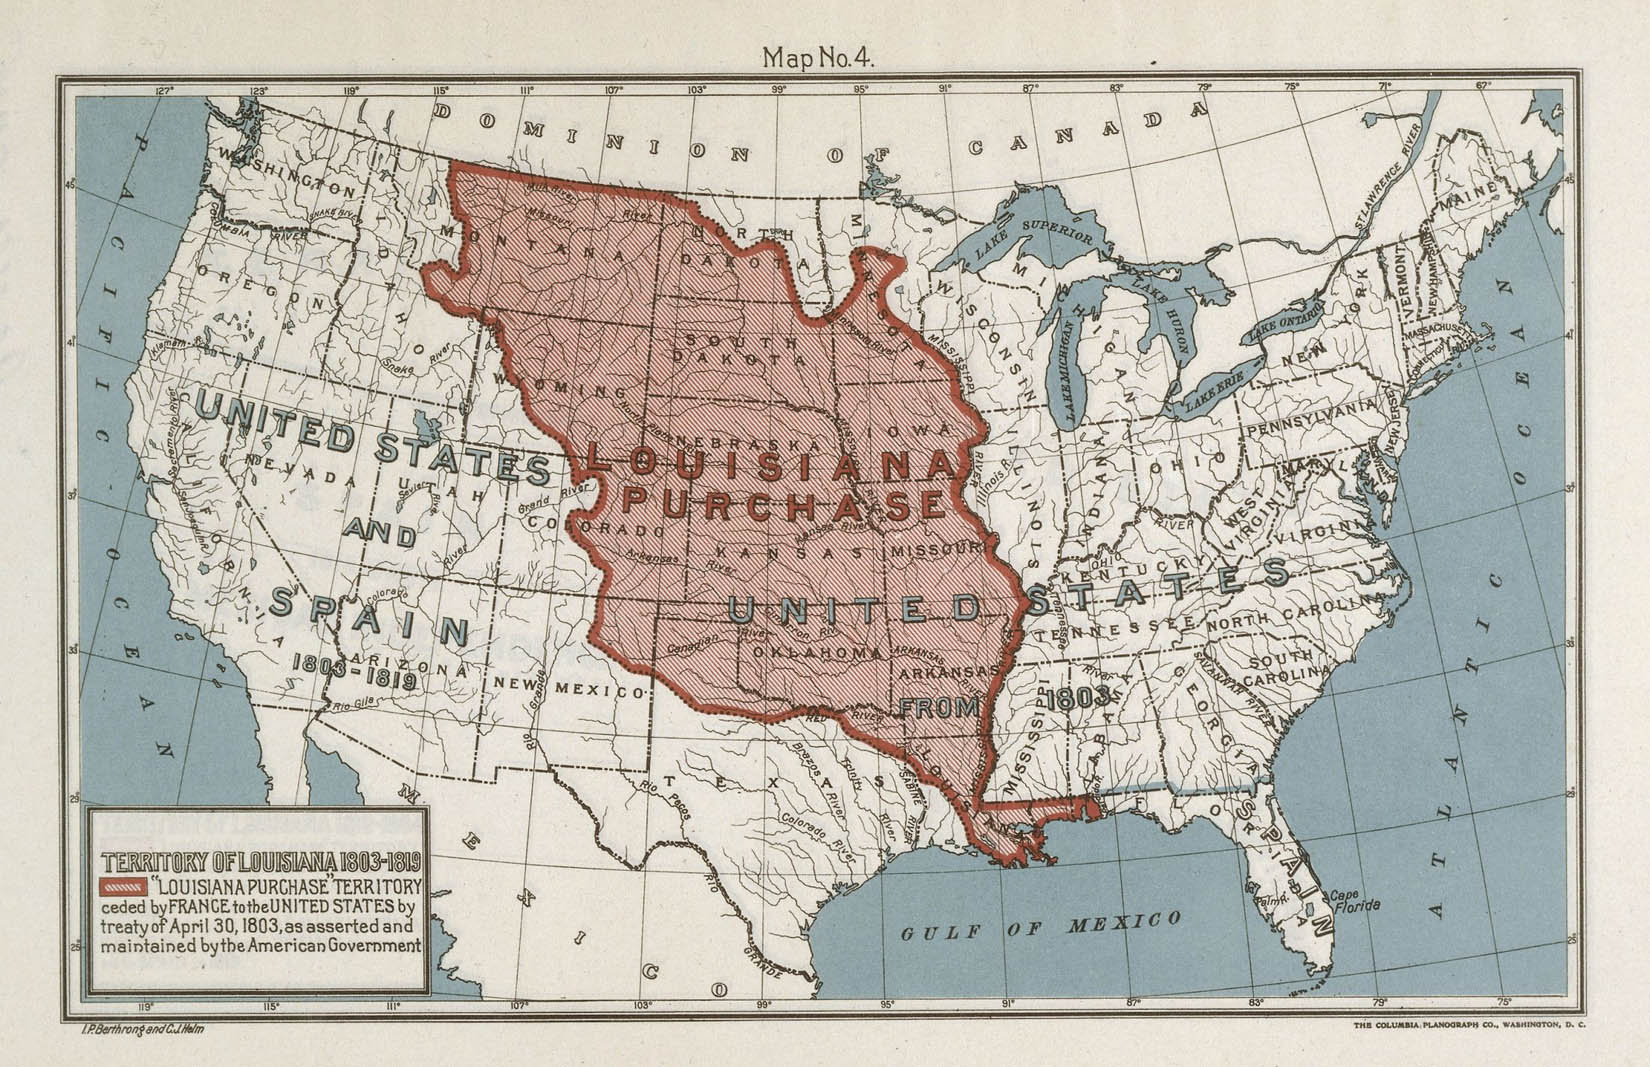 A historic map is shown of the United States and parts of Mexico and Canada. Bodies of water are blue and labeled, and rivers are shown as black lines. Major rivers are labeled. There are two layers of data. First, modern-day U.S. states are outlined in dotted black lines. Second, the  center third of the United States is colored red and labeled